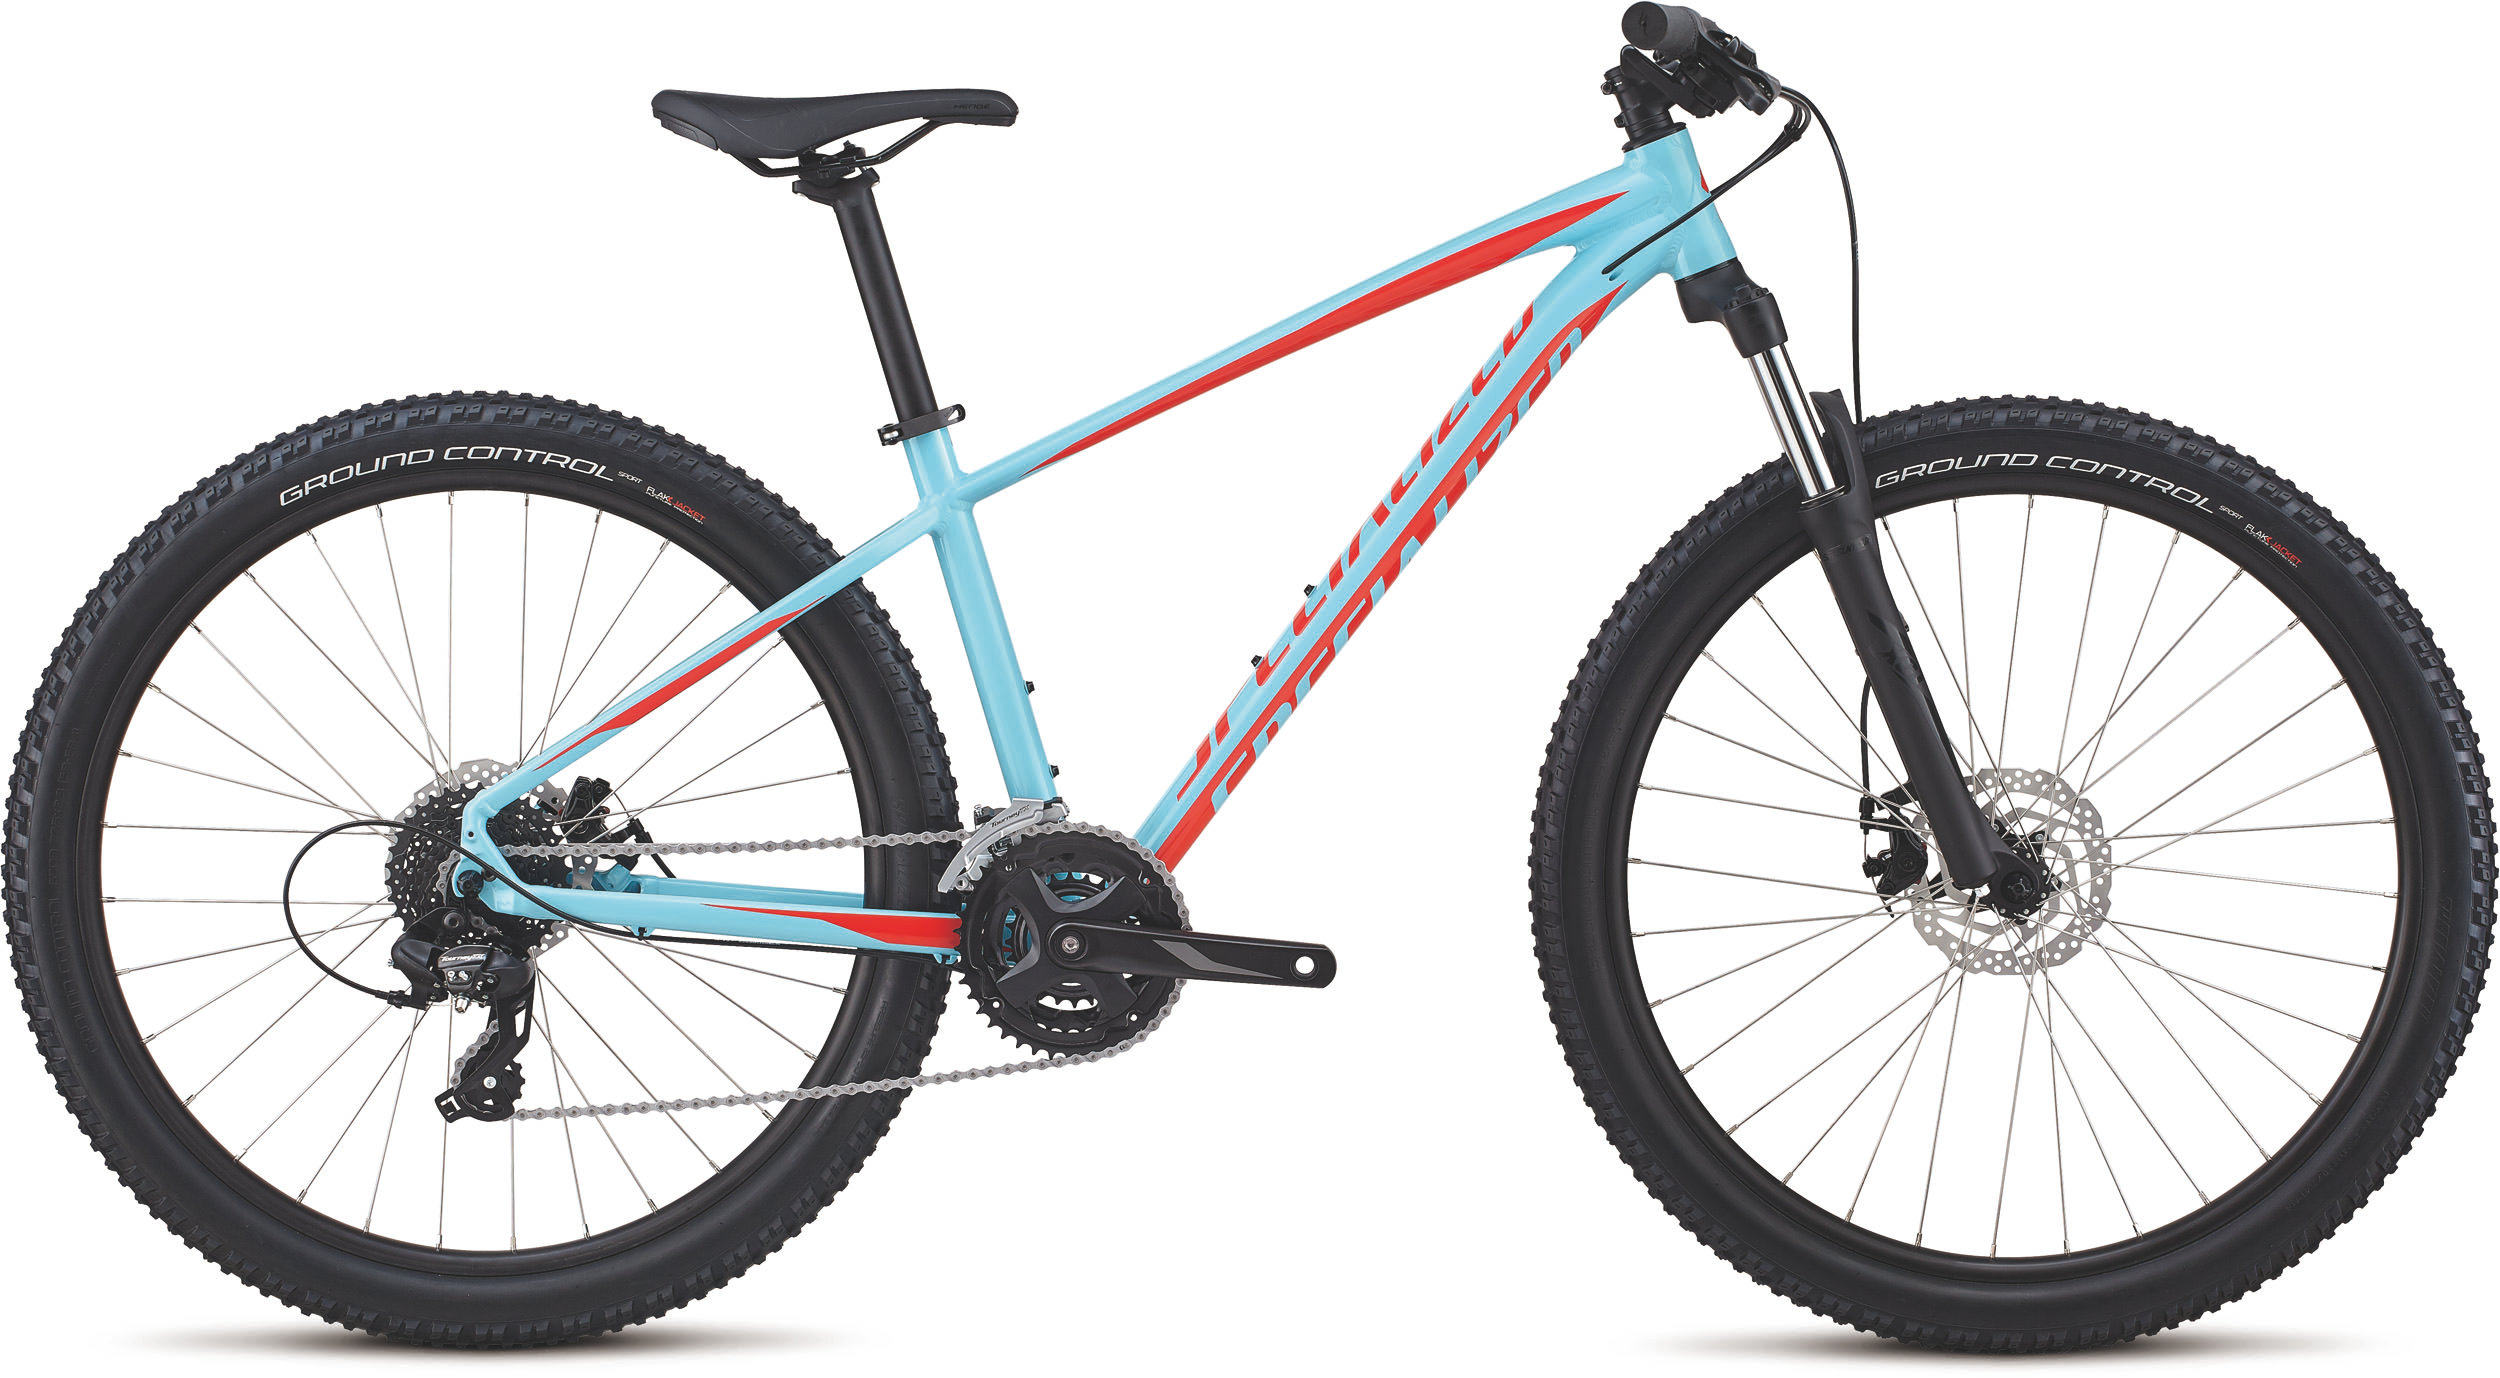 Specialized Men´s Pitch 27.5 GLOSS LT BLUE / ROCKET RED S - Specialized Men´s Pitch 27.5 GLOSS LT BLUE / ROCKET RED S